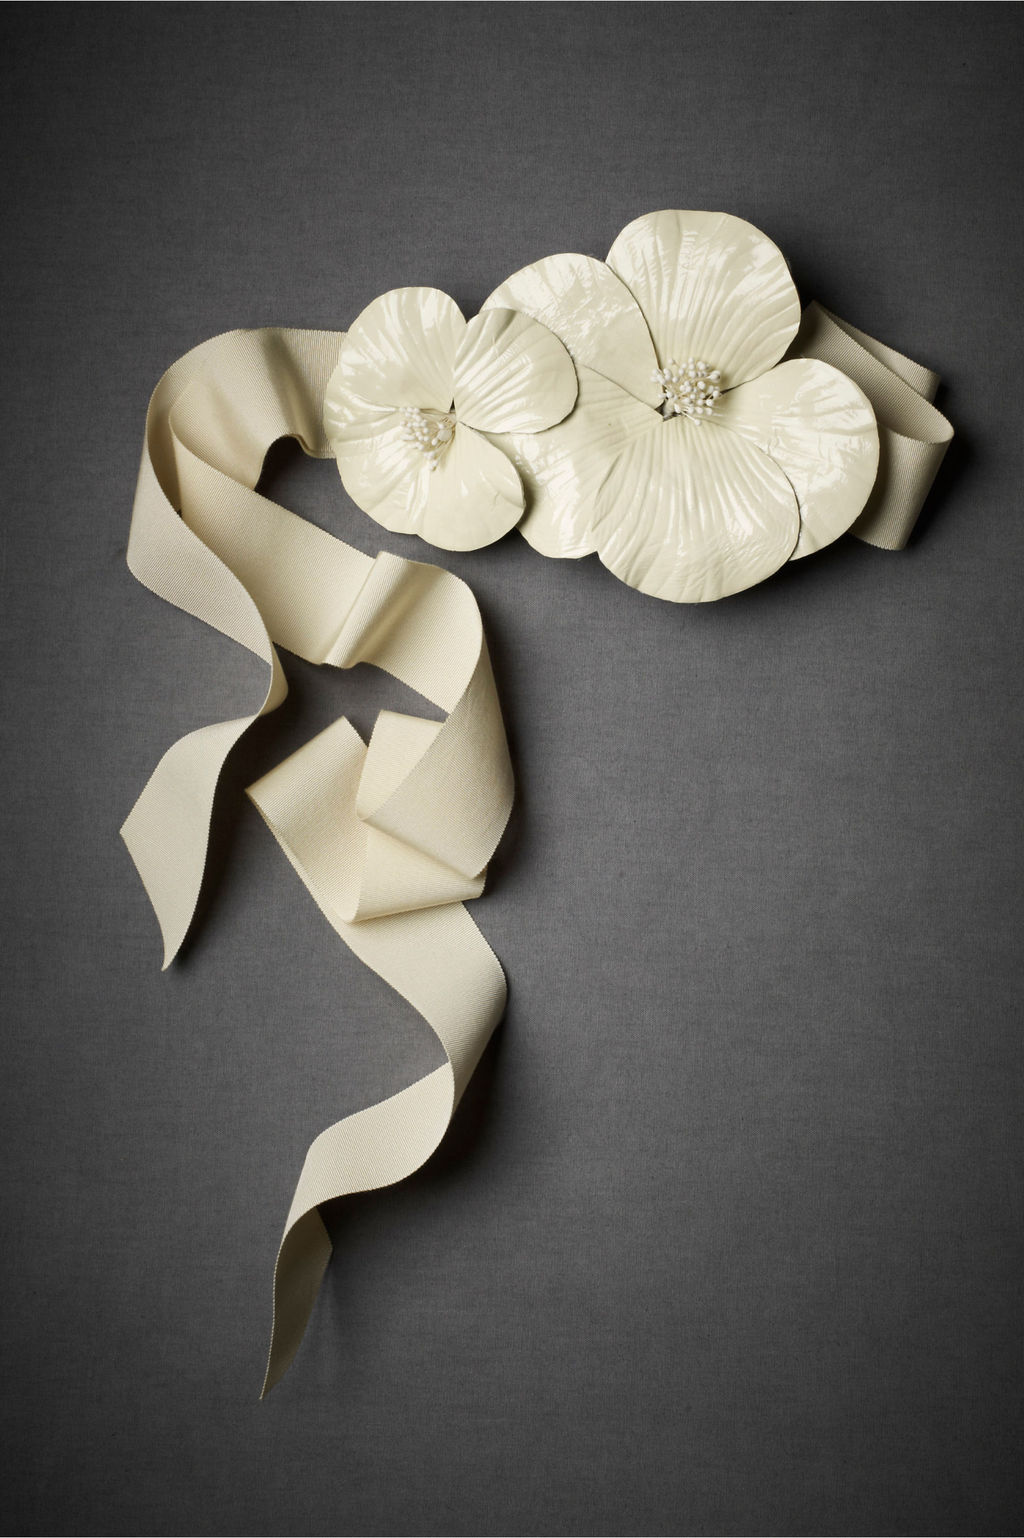 Bridal-belts-chic-wedding-accessories-bhldn-flowers-2.full